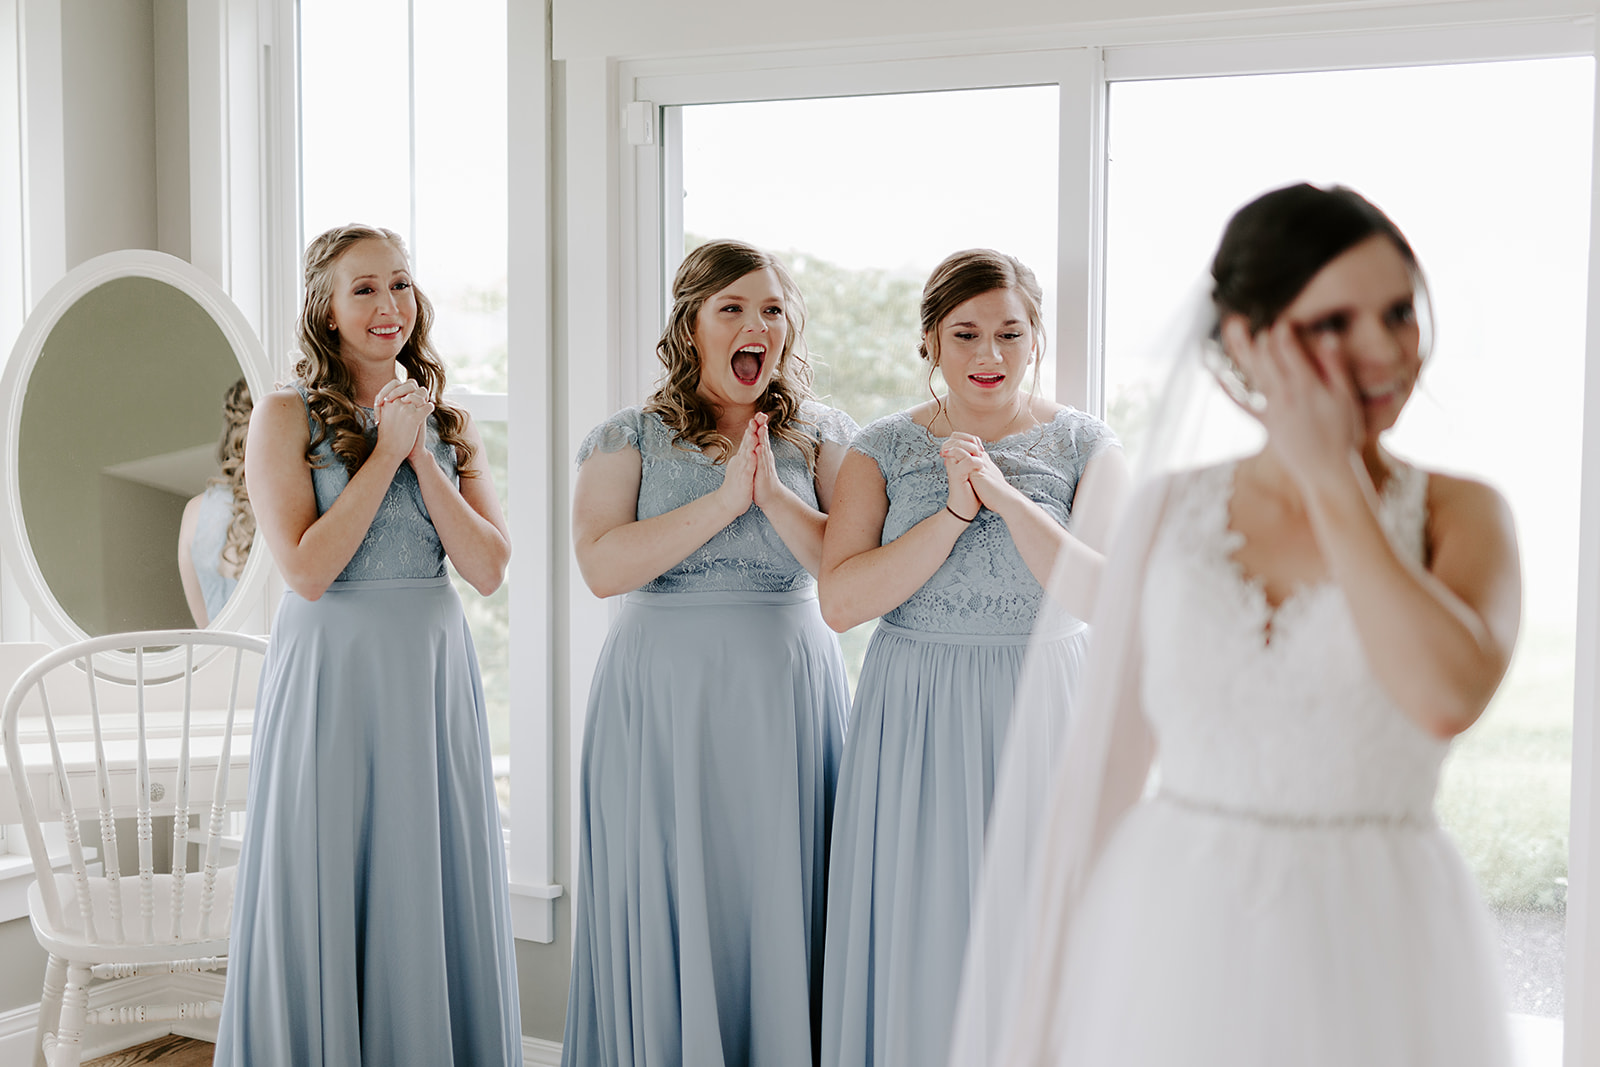 Kendra_and_Mattew_Indiana_Wedding_by_Emily_Wehner-140.jpg